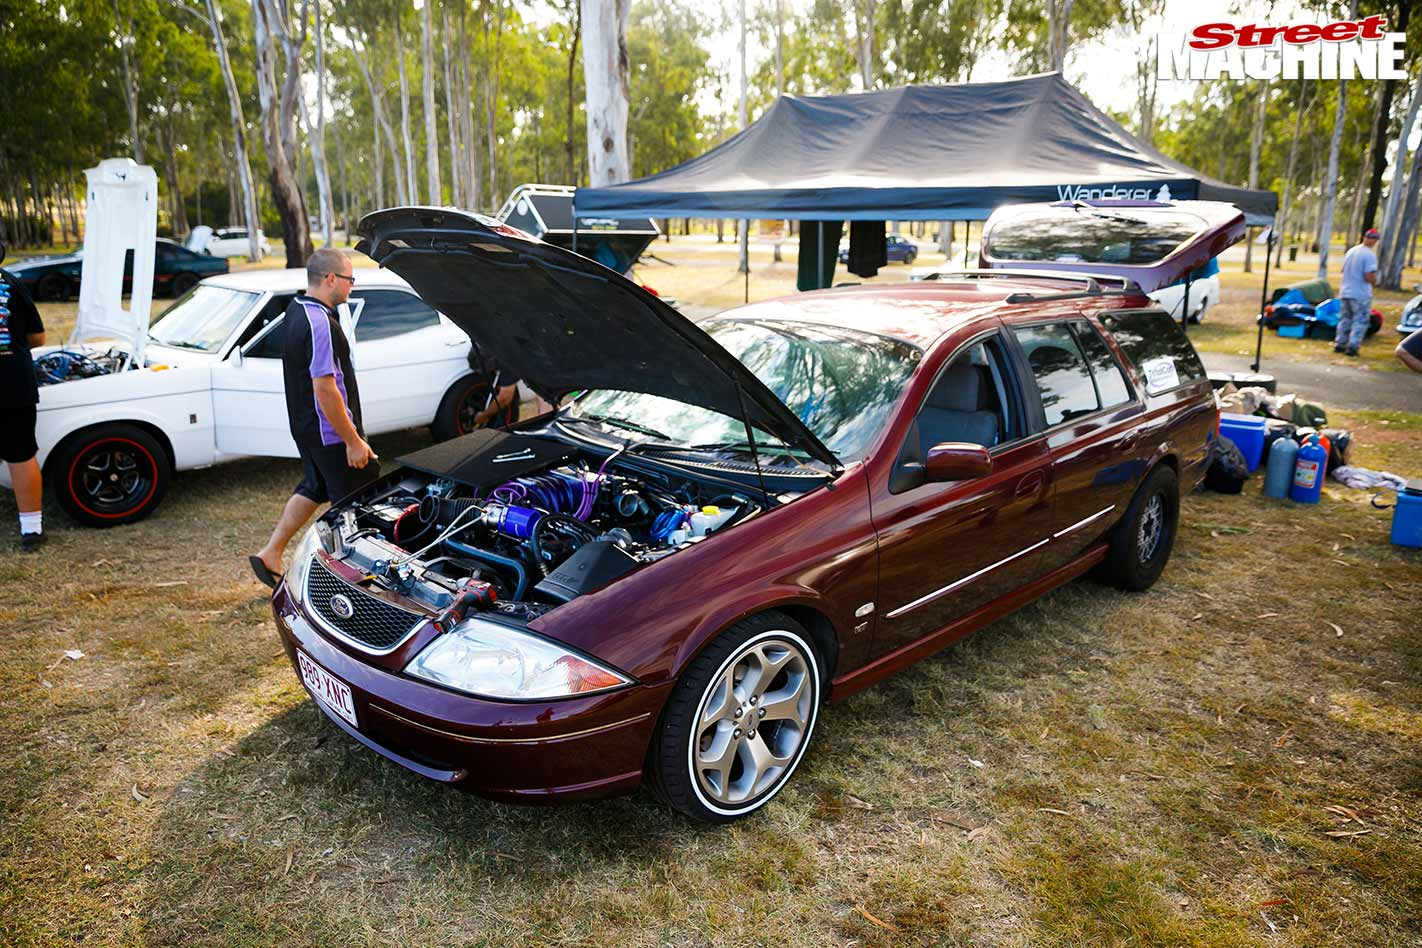 347ci V8-powered AU Falcon wagon at Drag Challenge Weekend 2018